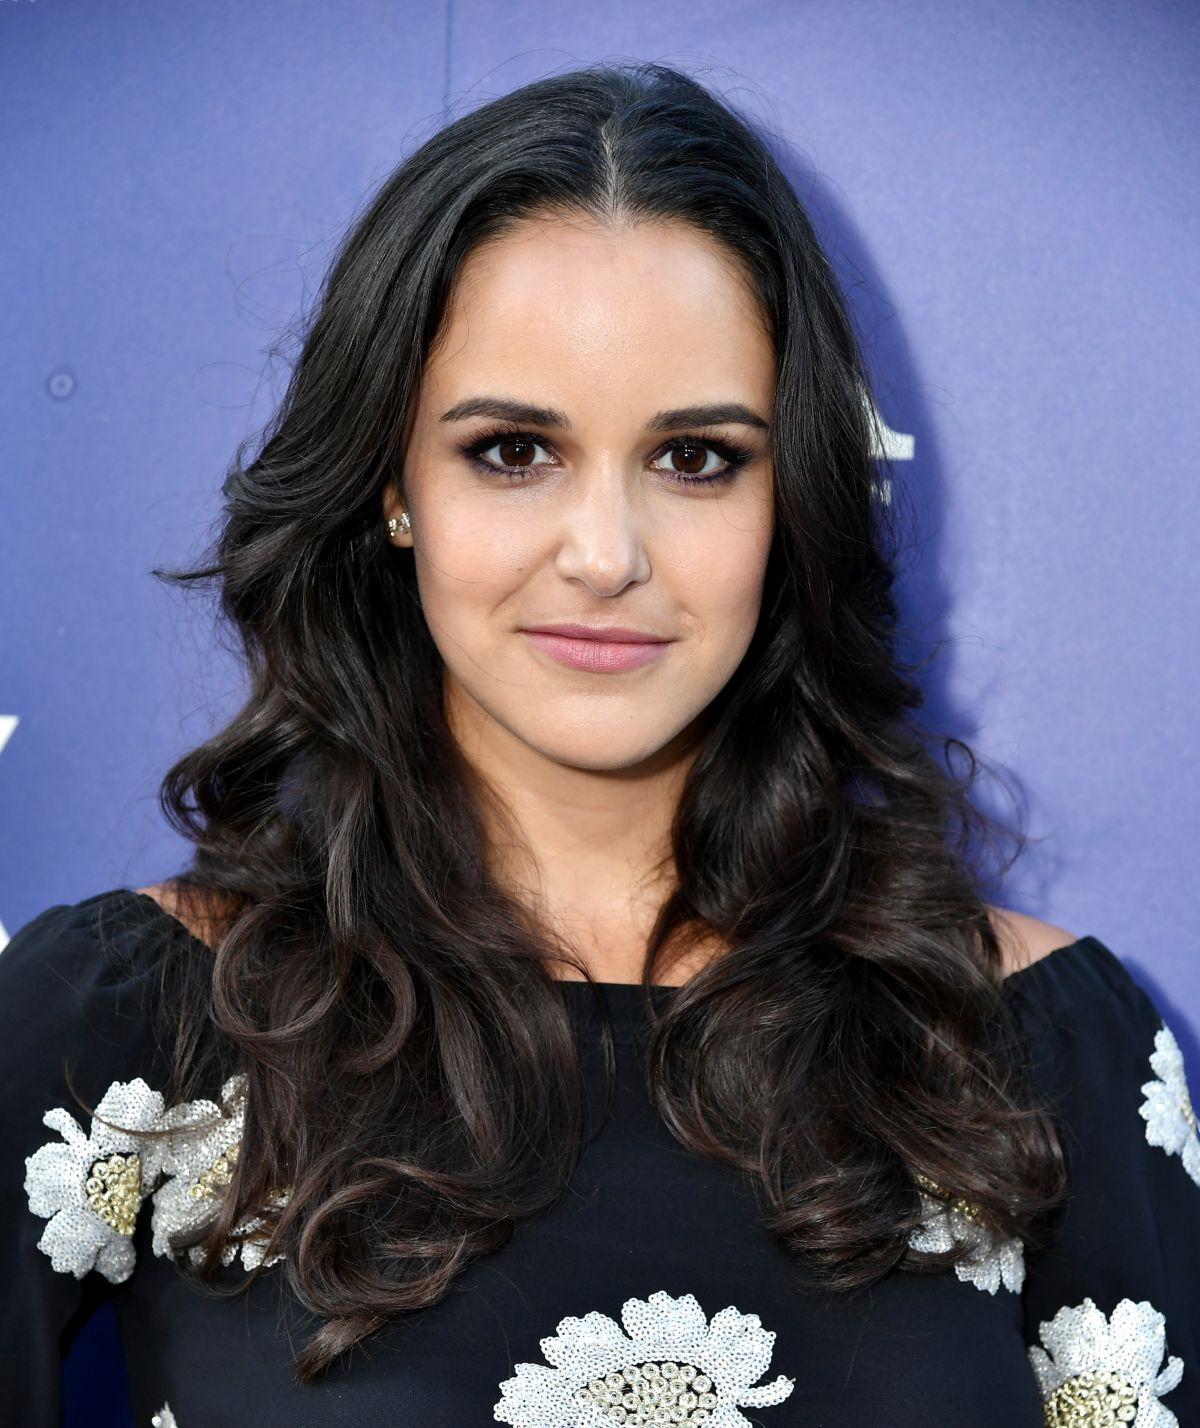 MELISSA FUMERO at Fox Summer TCA All-star Party in West Hollywood 08/08/2016